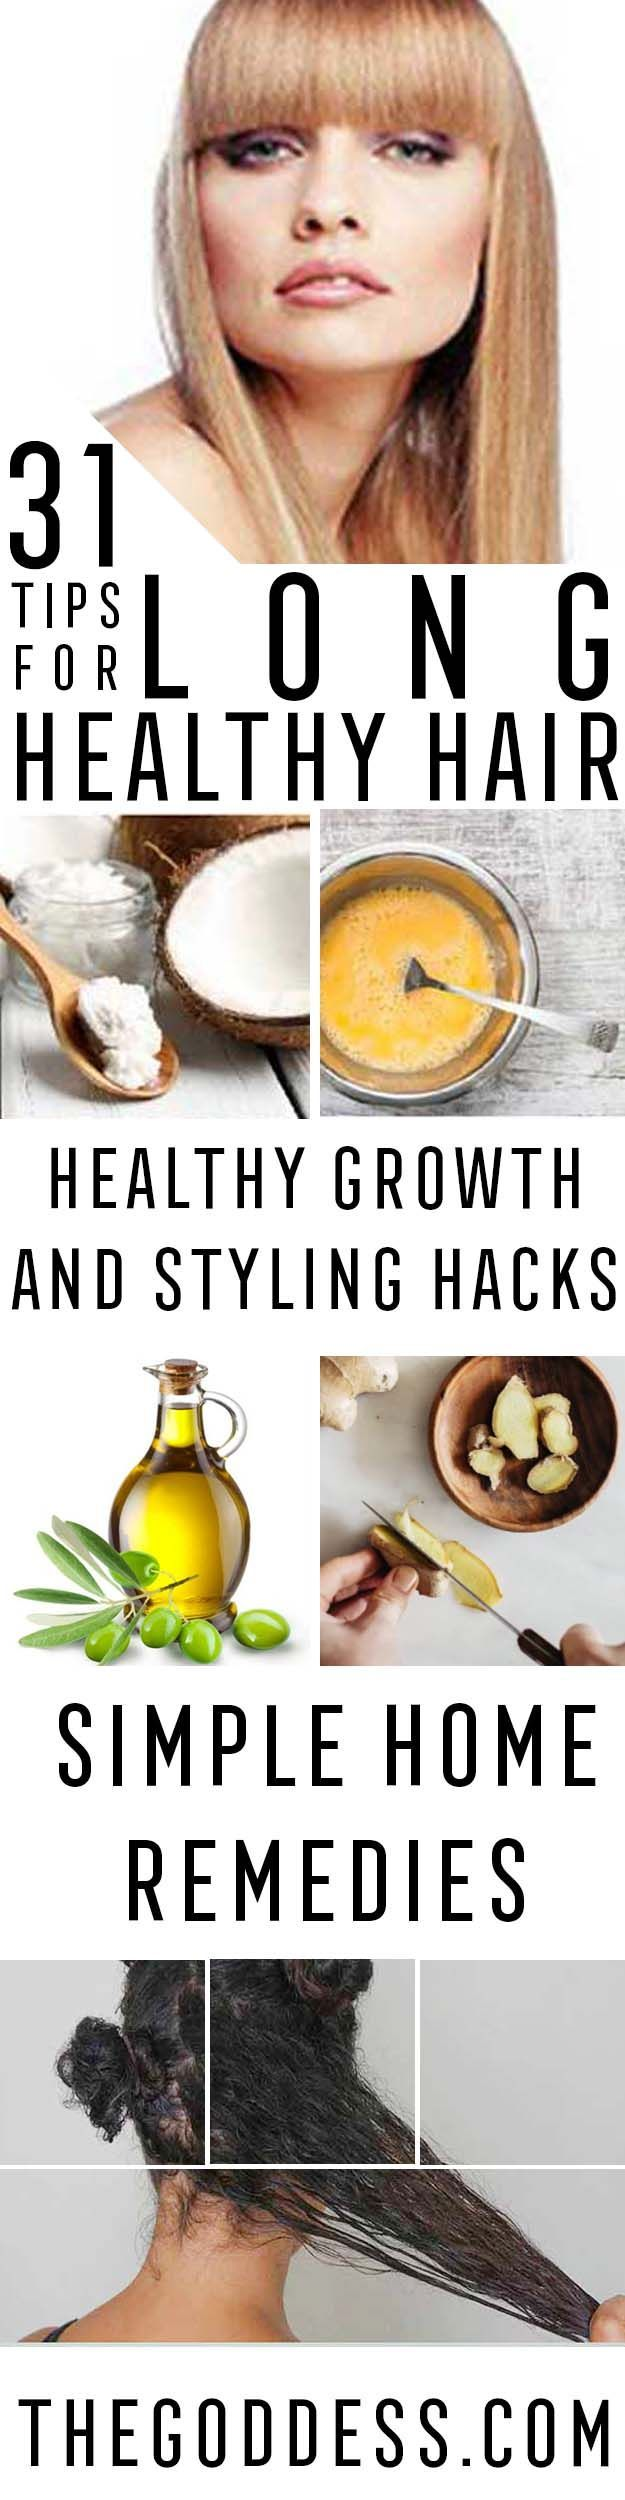 Tips and Tricks For Long, Healthy Hair - Healthy Hair Growth Tips and Styling Tr...